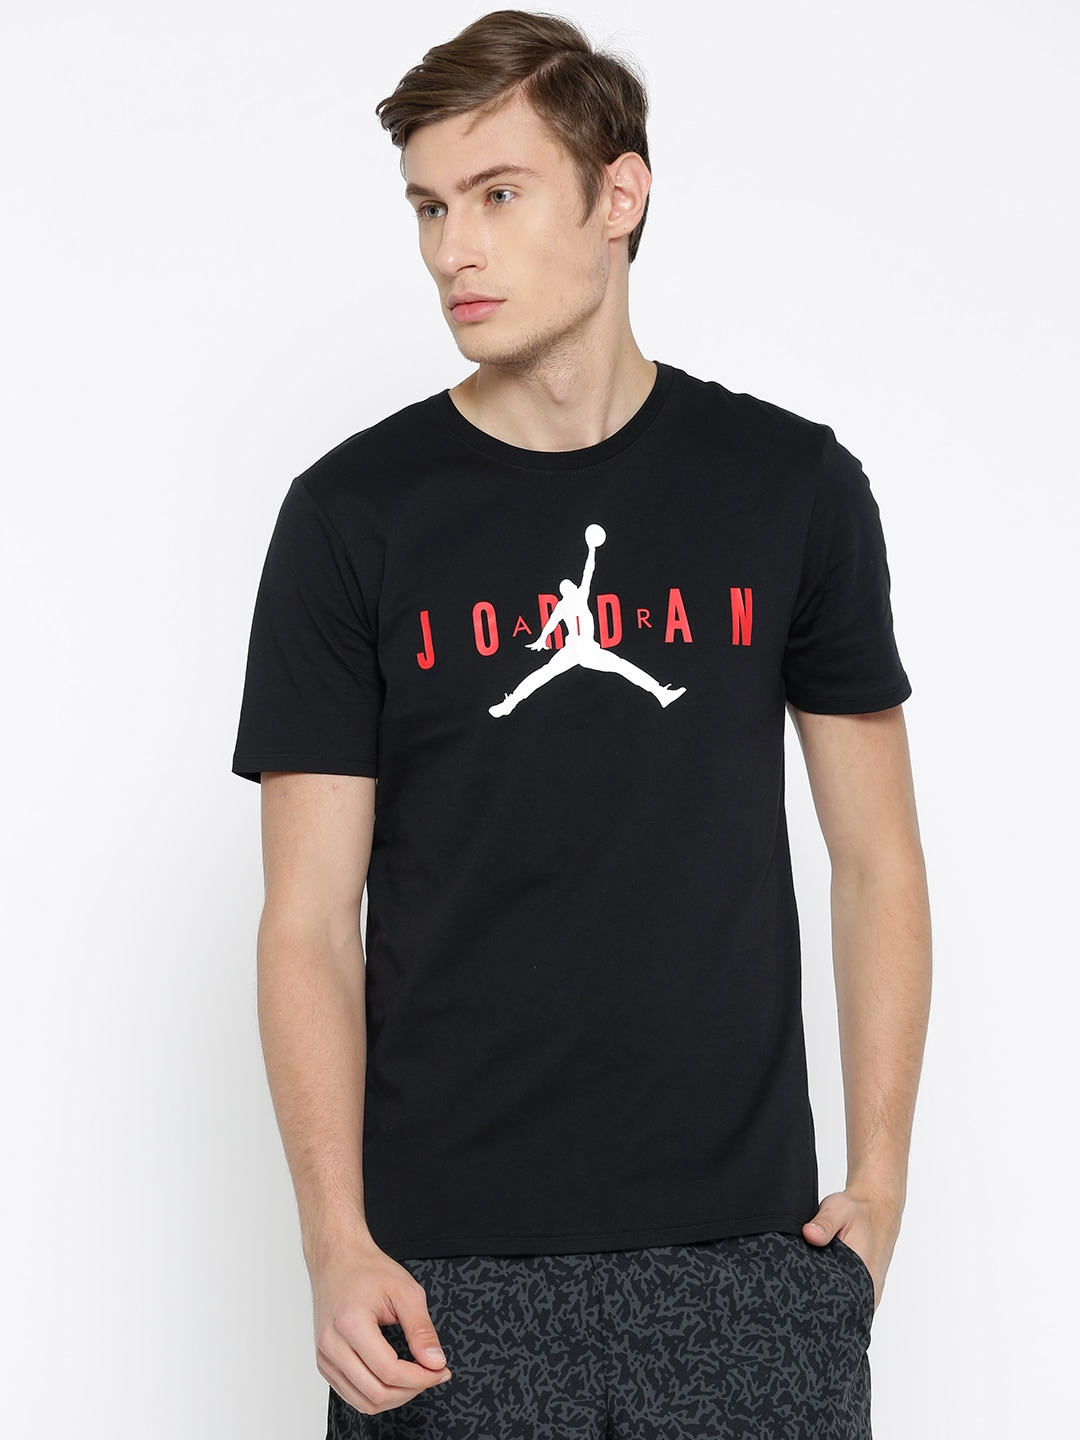 the latest 2ef88 240b6 Nike Jordan - Buy Original Nike Jordan Products Online   Myntra